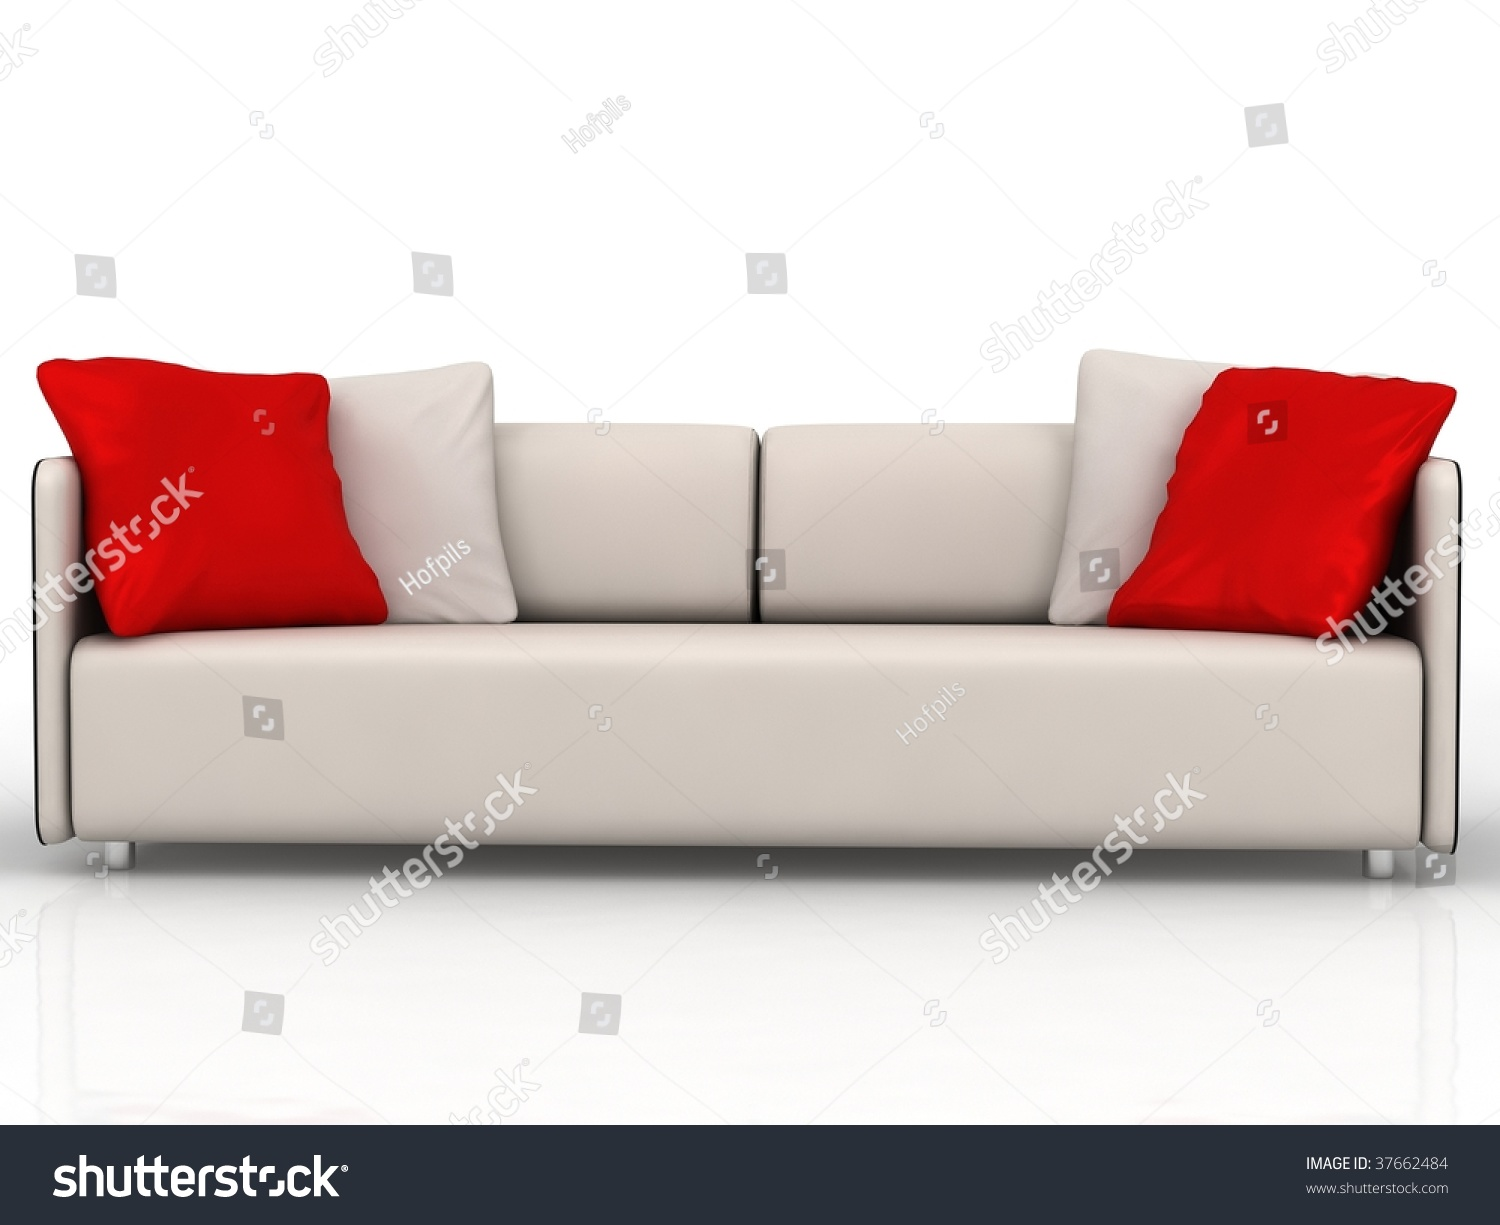 Modern Couch With Red And White Cushions   Isolated On White